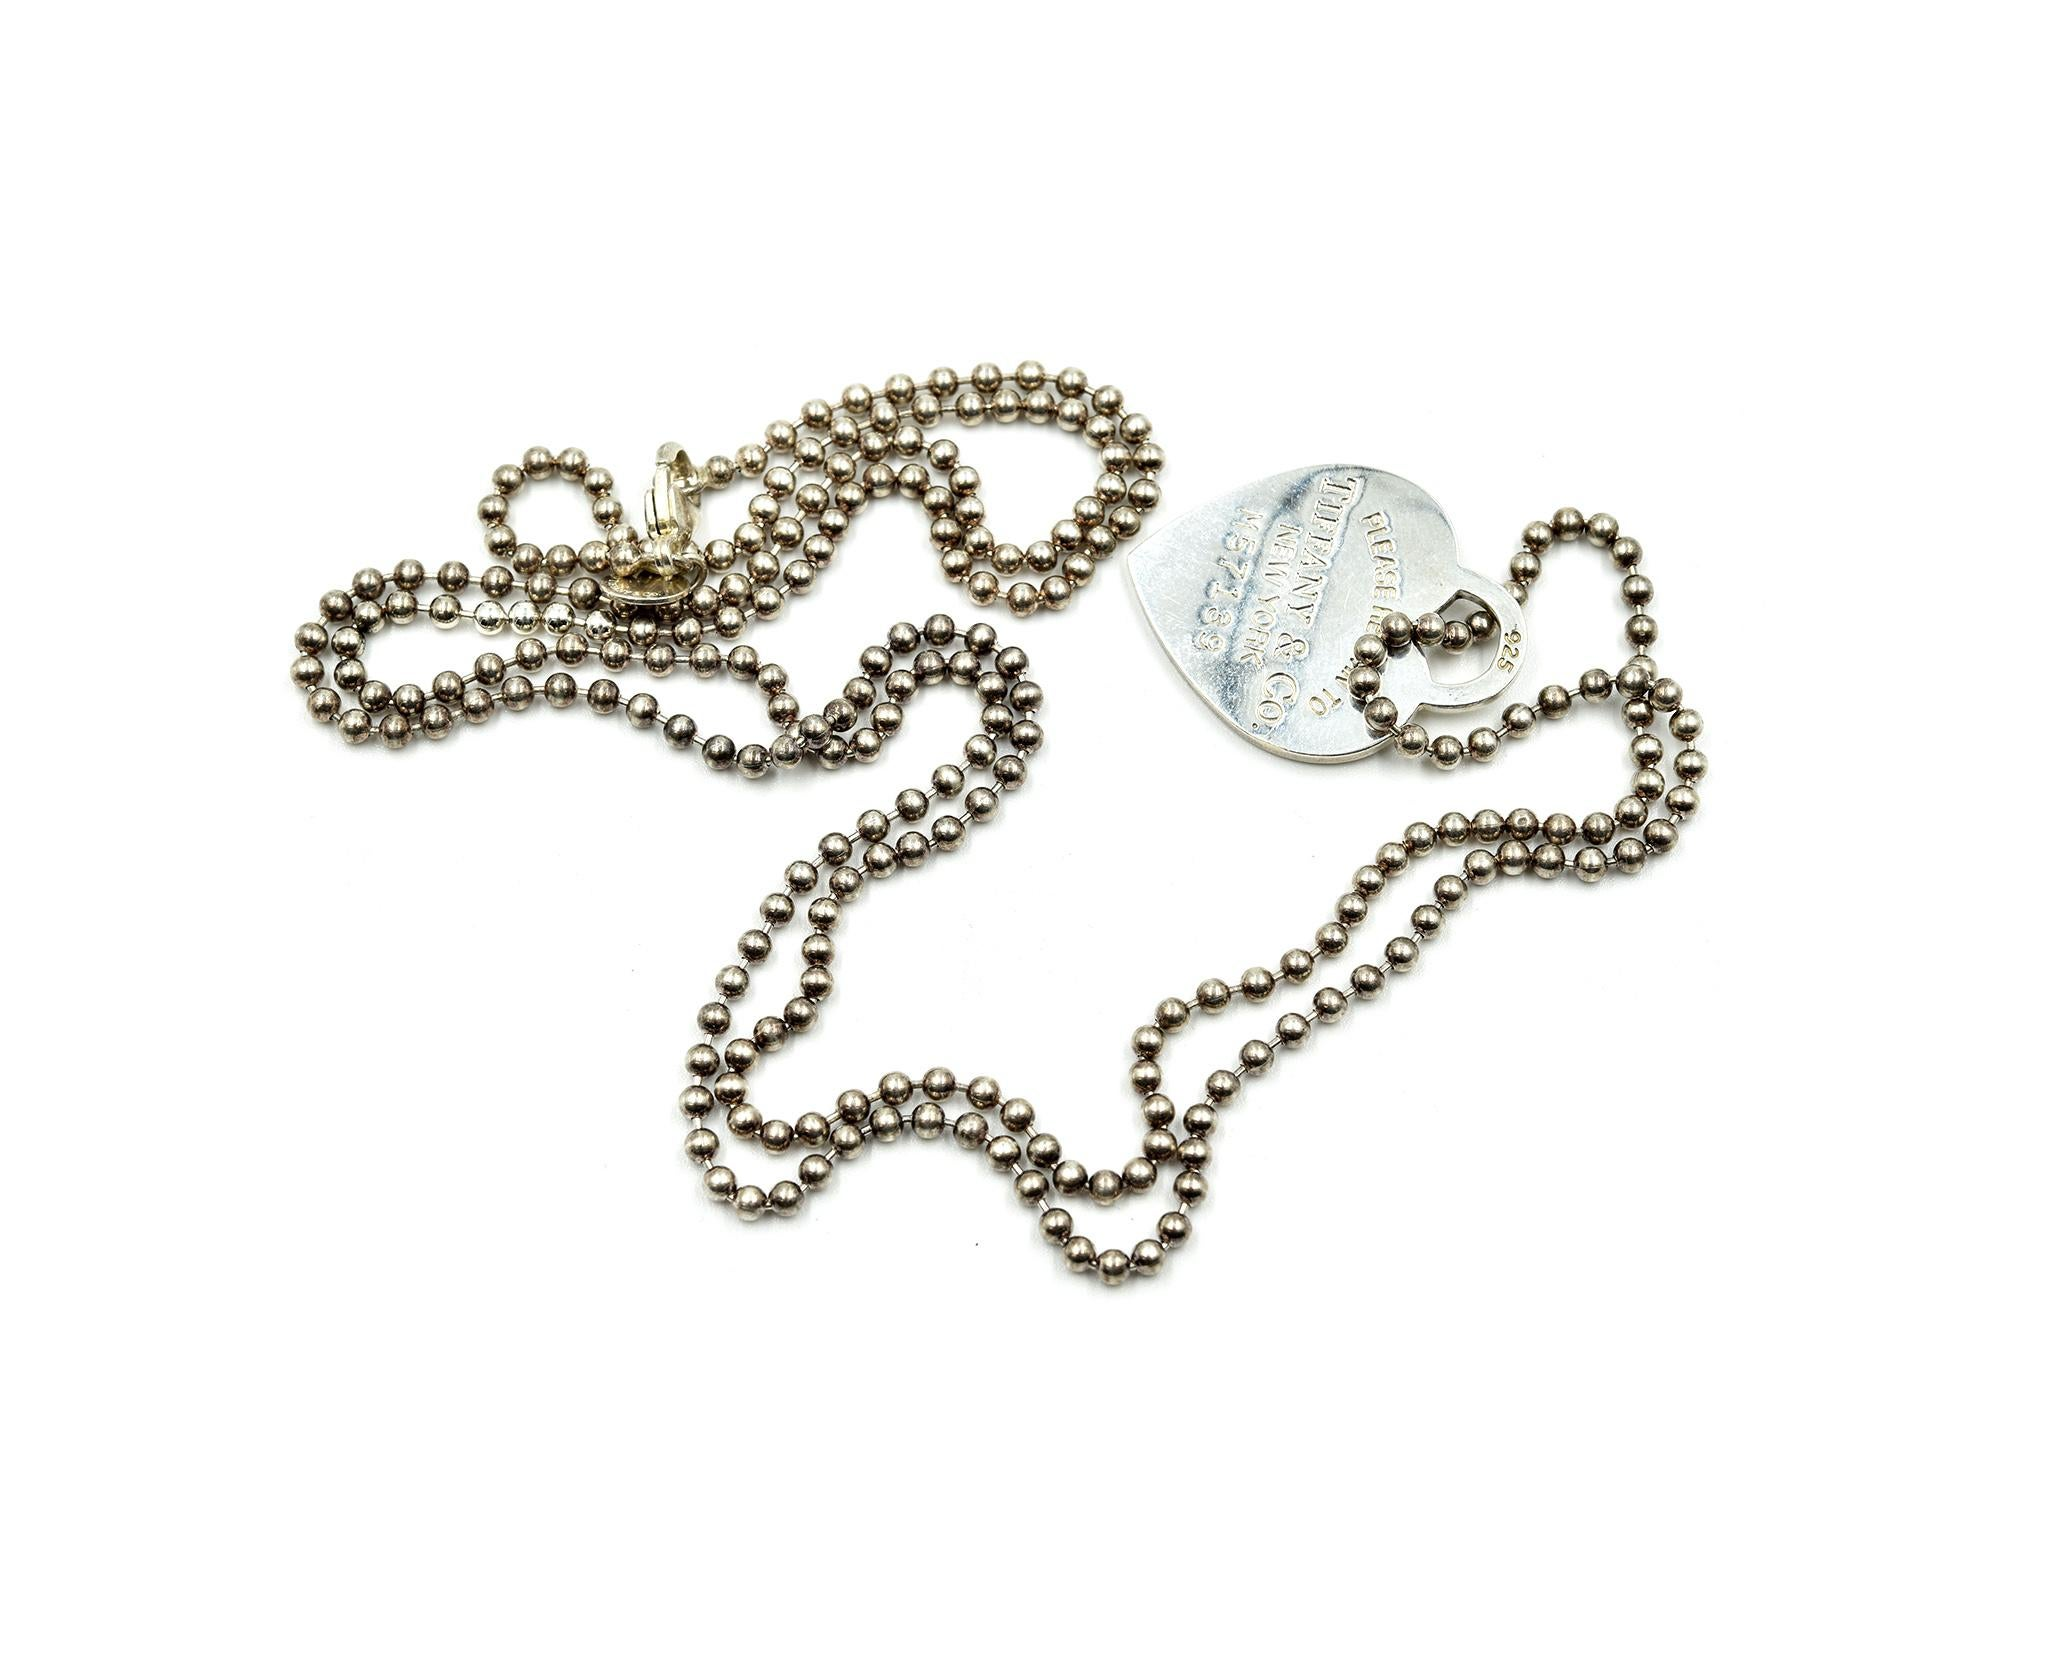 4d421e0d3fc6 Tiffany and Co Return to Tiffany Heart Pendant on Bead Sterling Silver  Necklace at 1stdibs